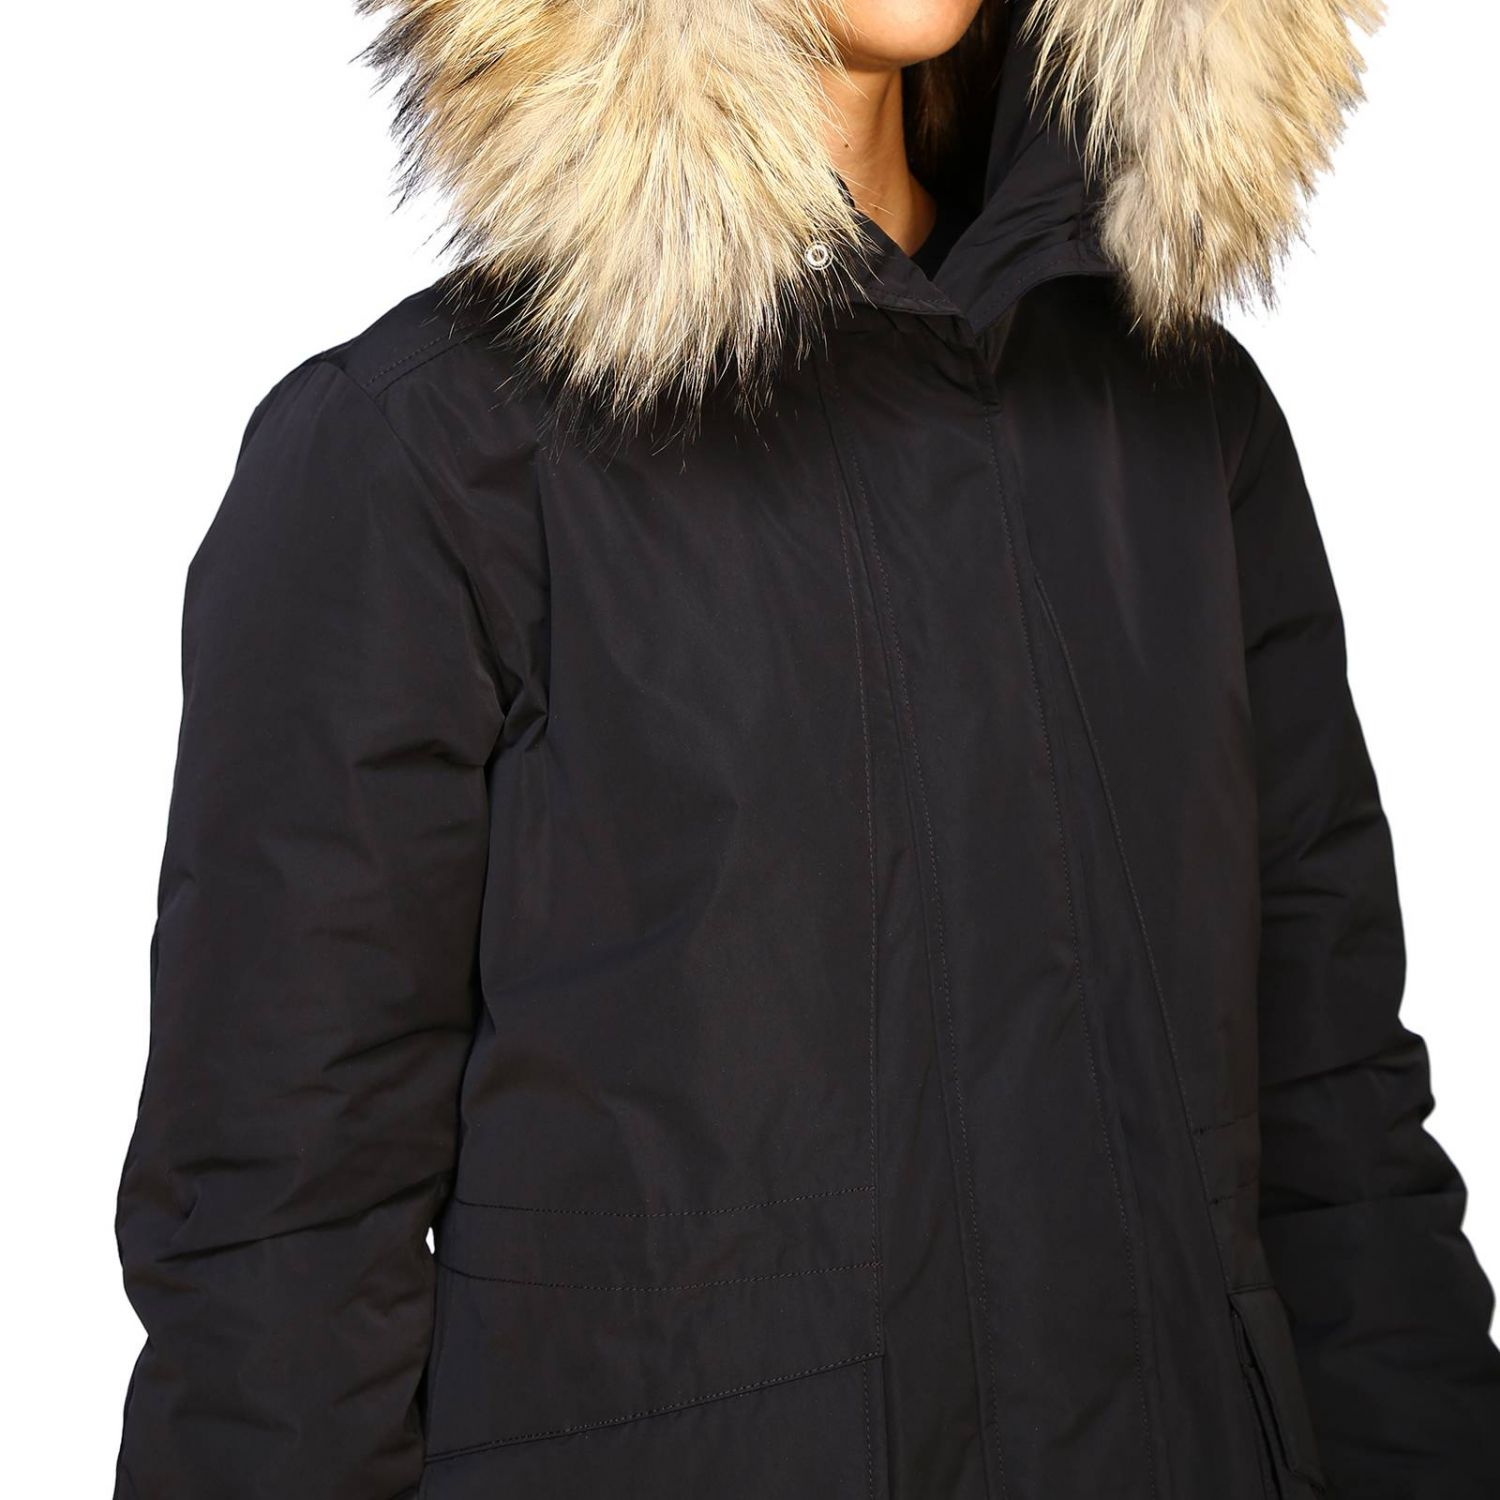 Giacca donna Woolrich nero 5